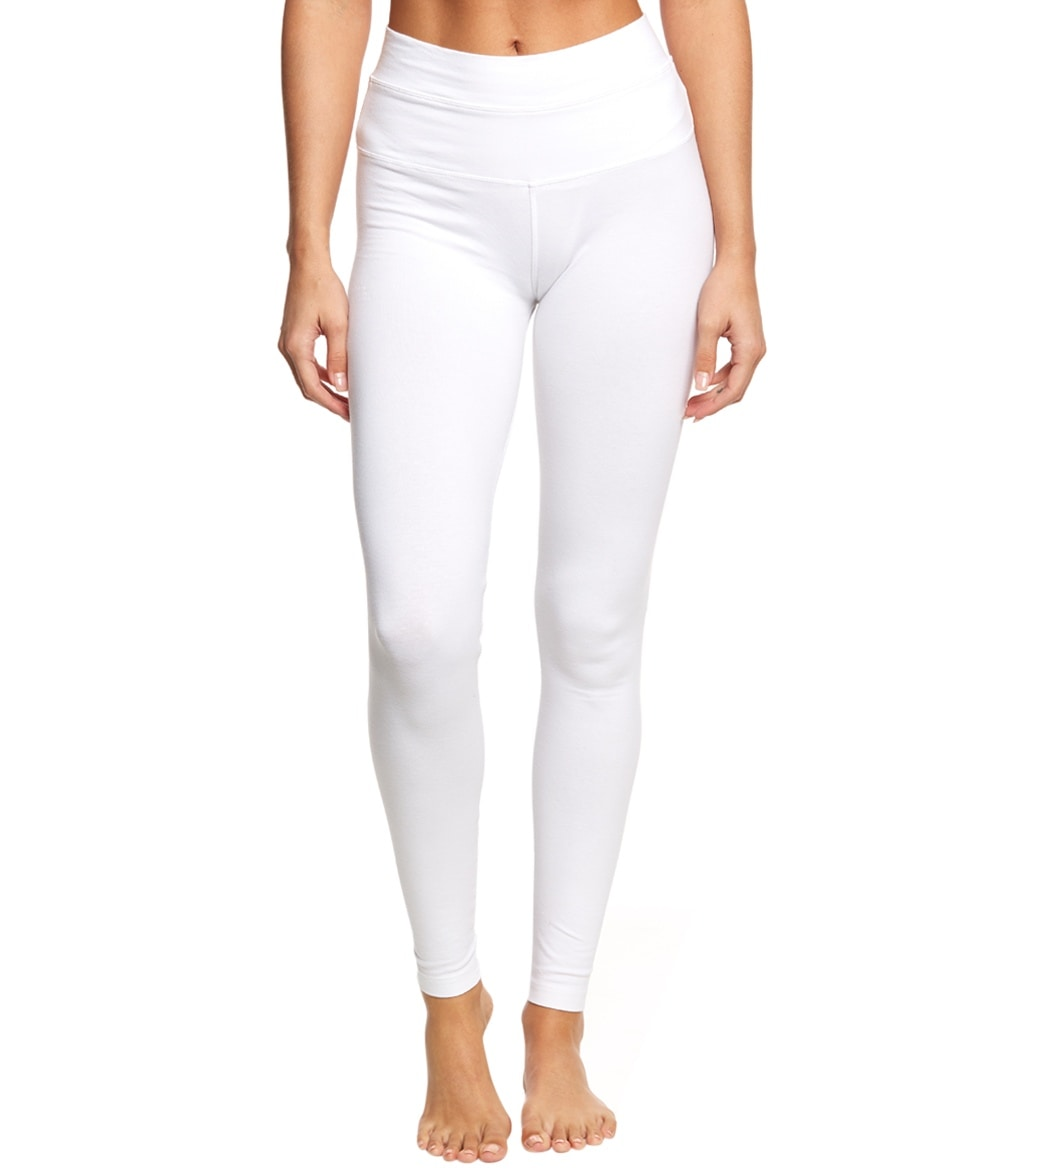 Hard Tail High Waisted Cotton Ankle Yoga Leggings - White